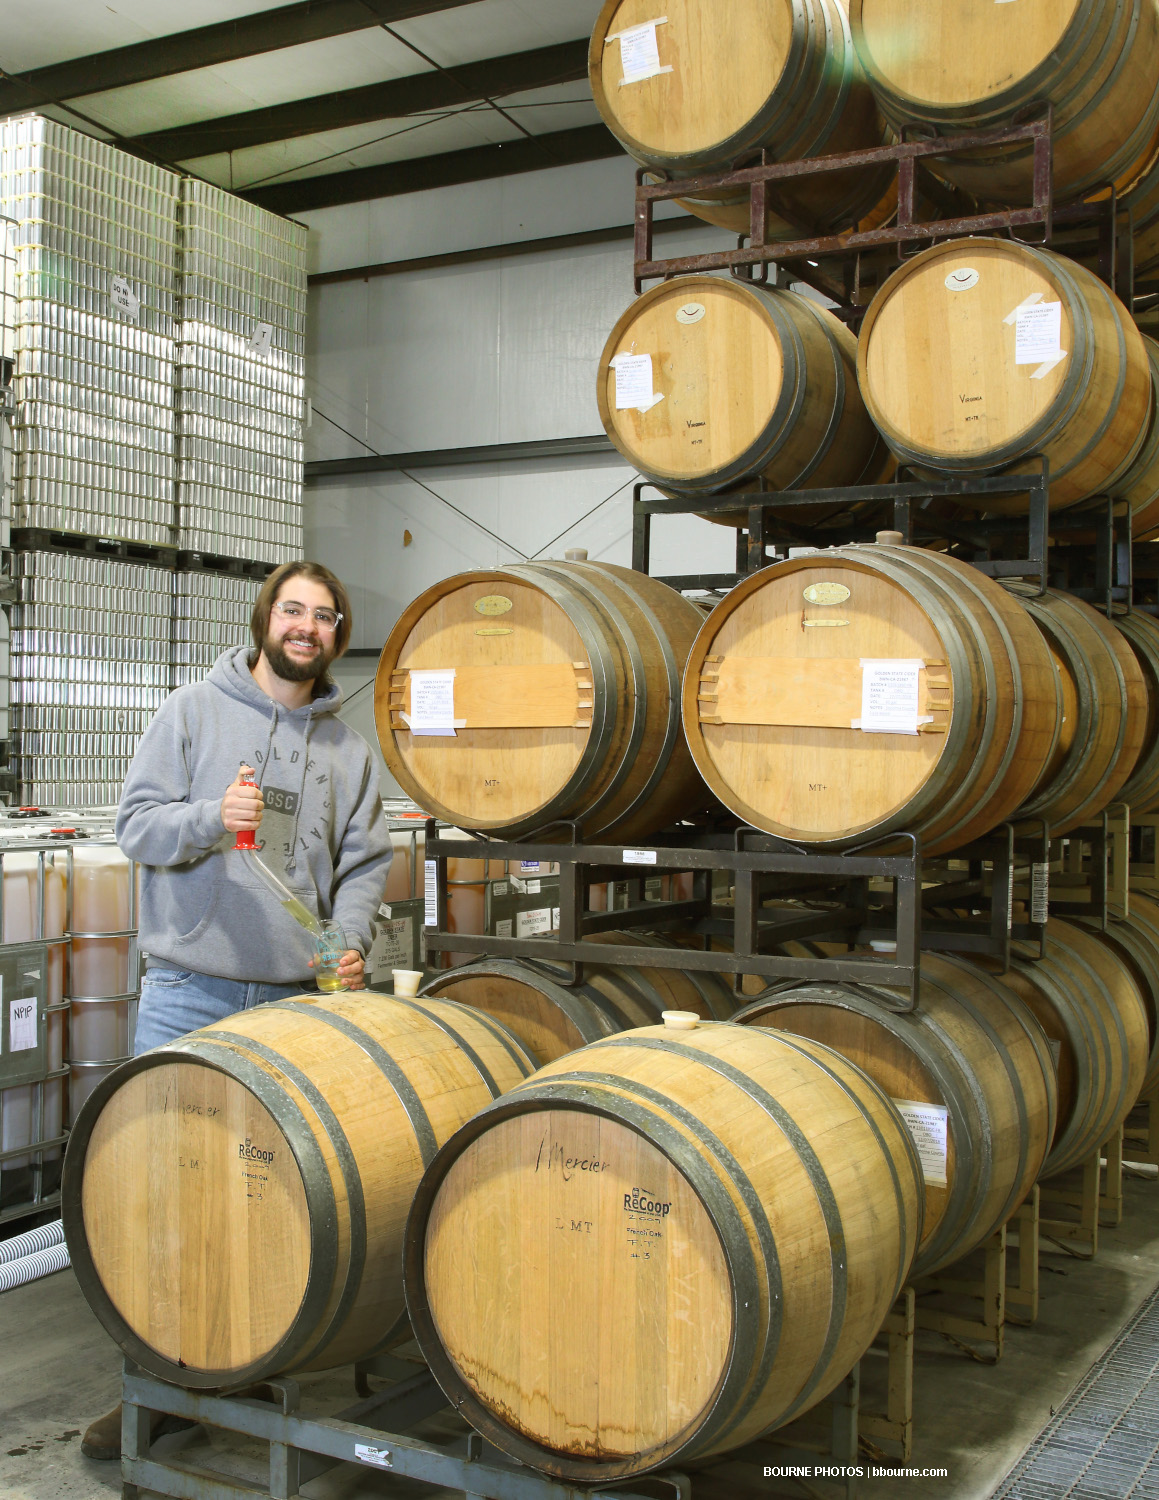 man standing in warehouse next to wooden barrels with cider, testing cider, with stacked cans in the background.